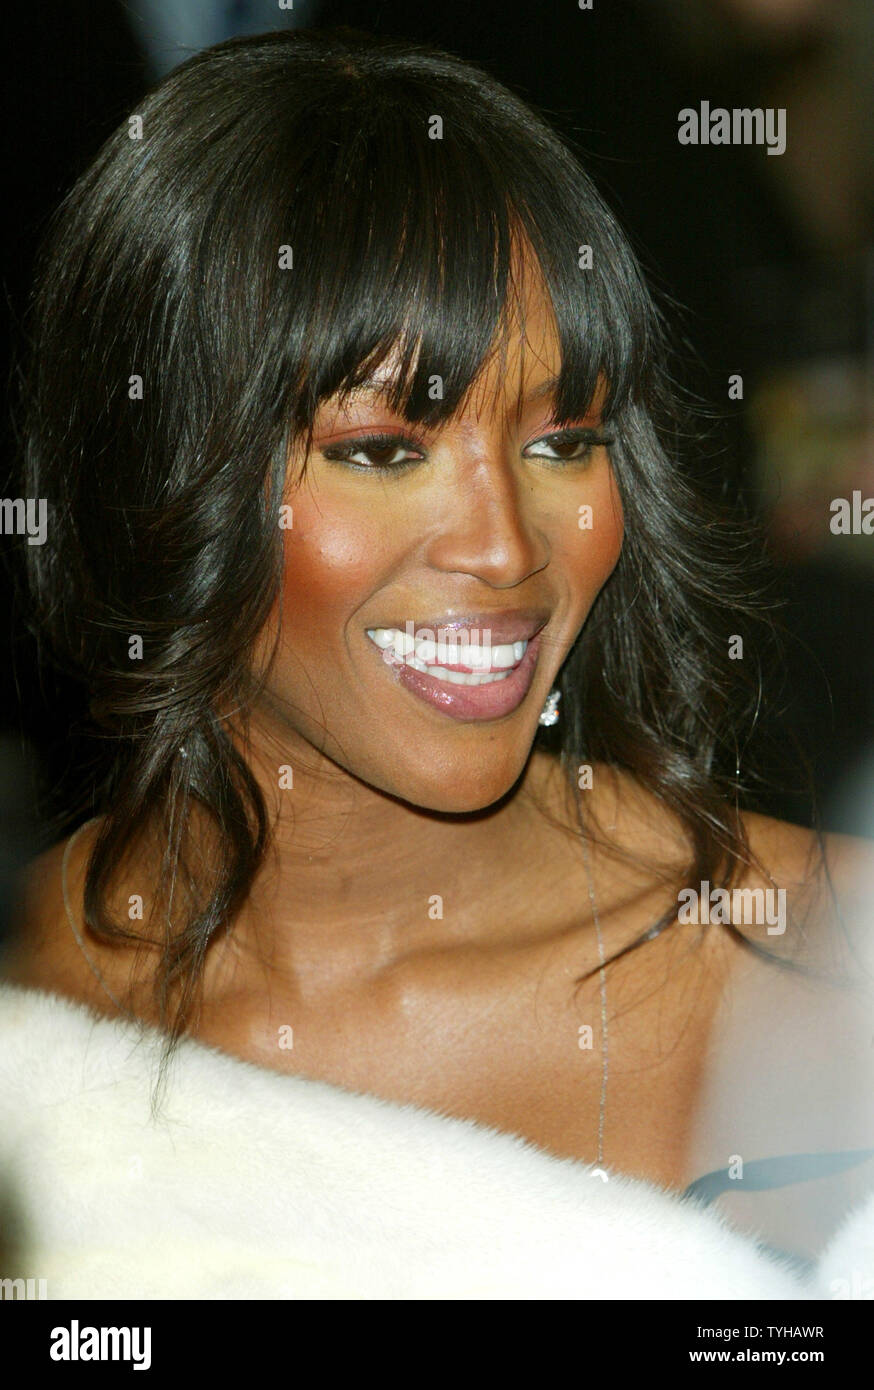 Modle High Resolution Stock Photography And Images Alamy Selection of hand made designer pieces from belgrade. https www alamy com super modle naomi campbell arrives at opening night of the play the color purple which oprah winfrey helped produce at the broadway theatre on december 1 2005 in new york city upi photomonika graff image257922611 html